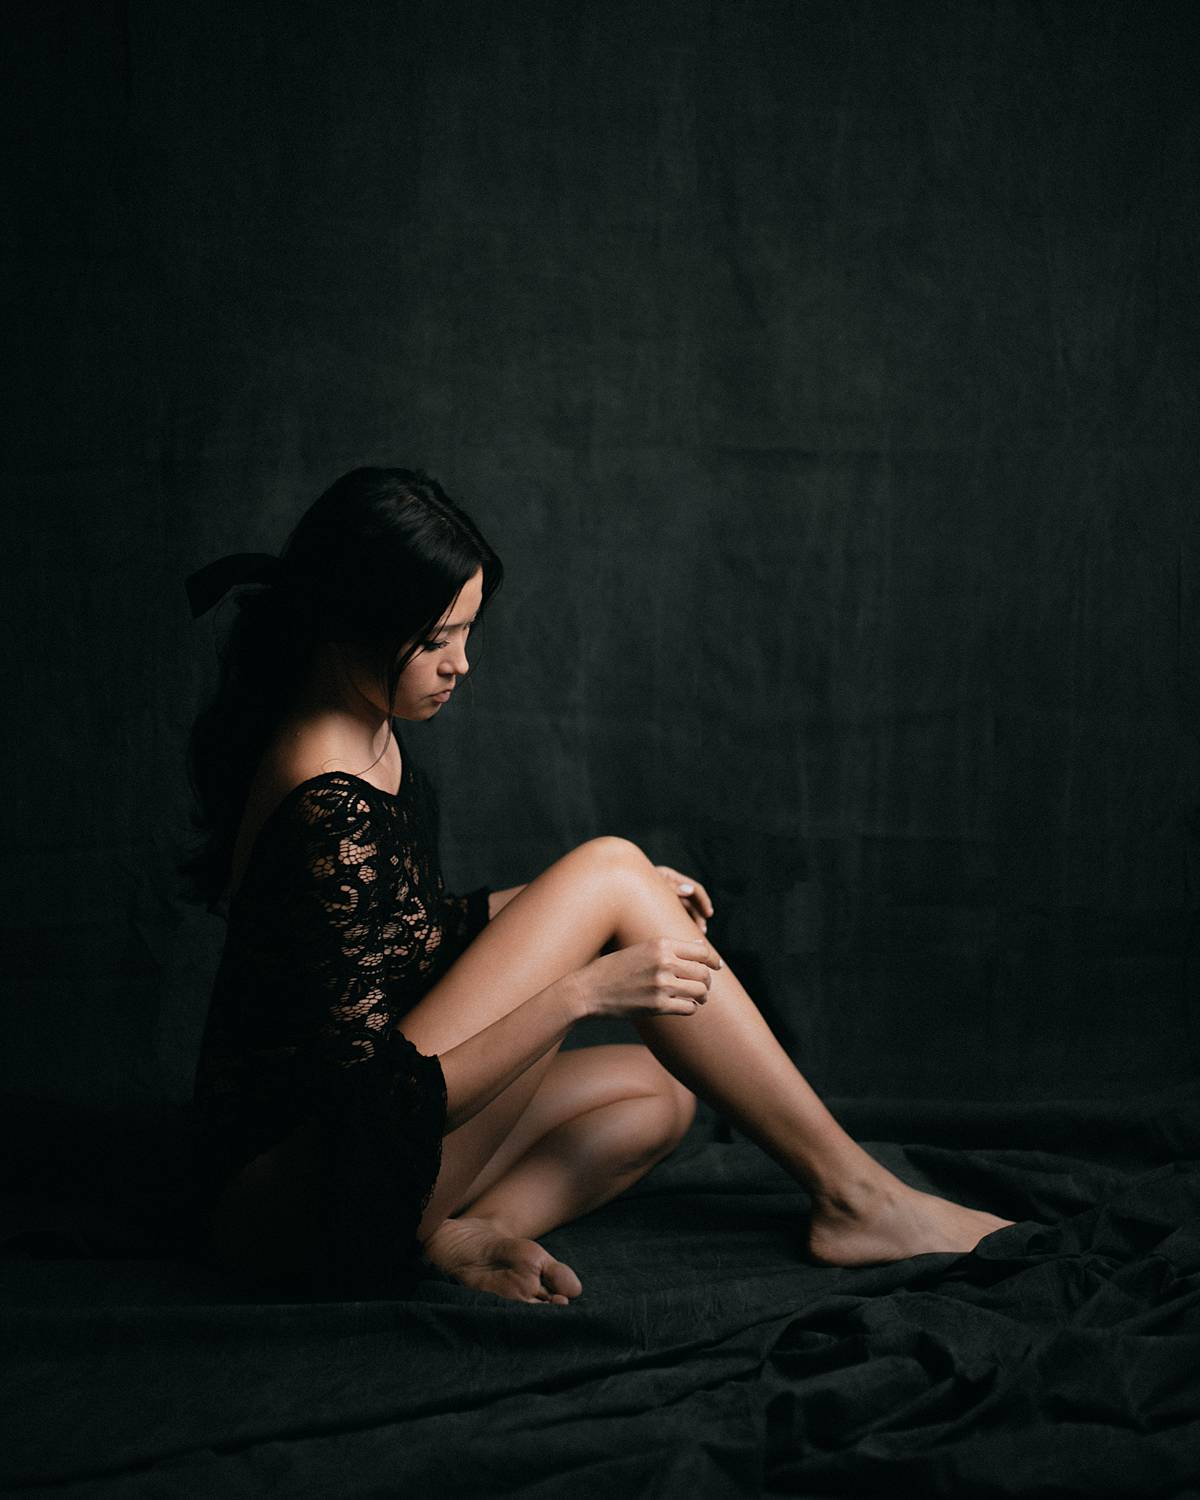 charleston studio boudoir portrait dark backdrop with soft window light and girl in black lace bodysuit